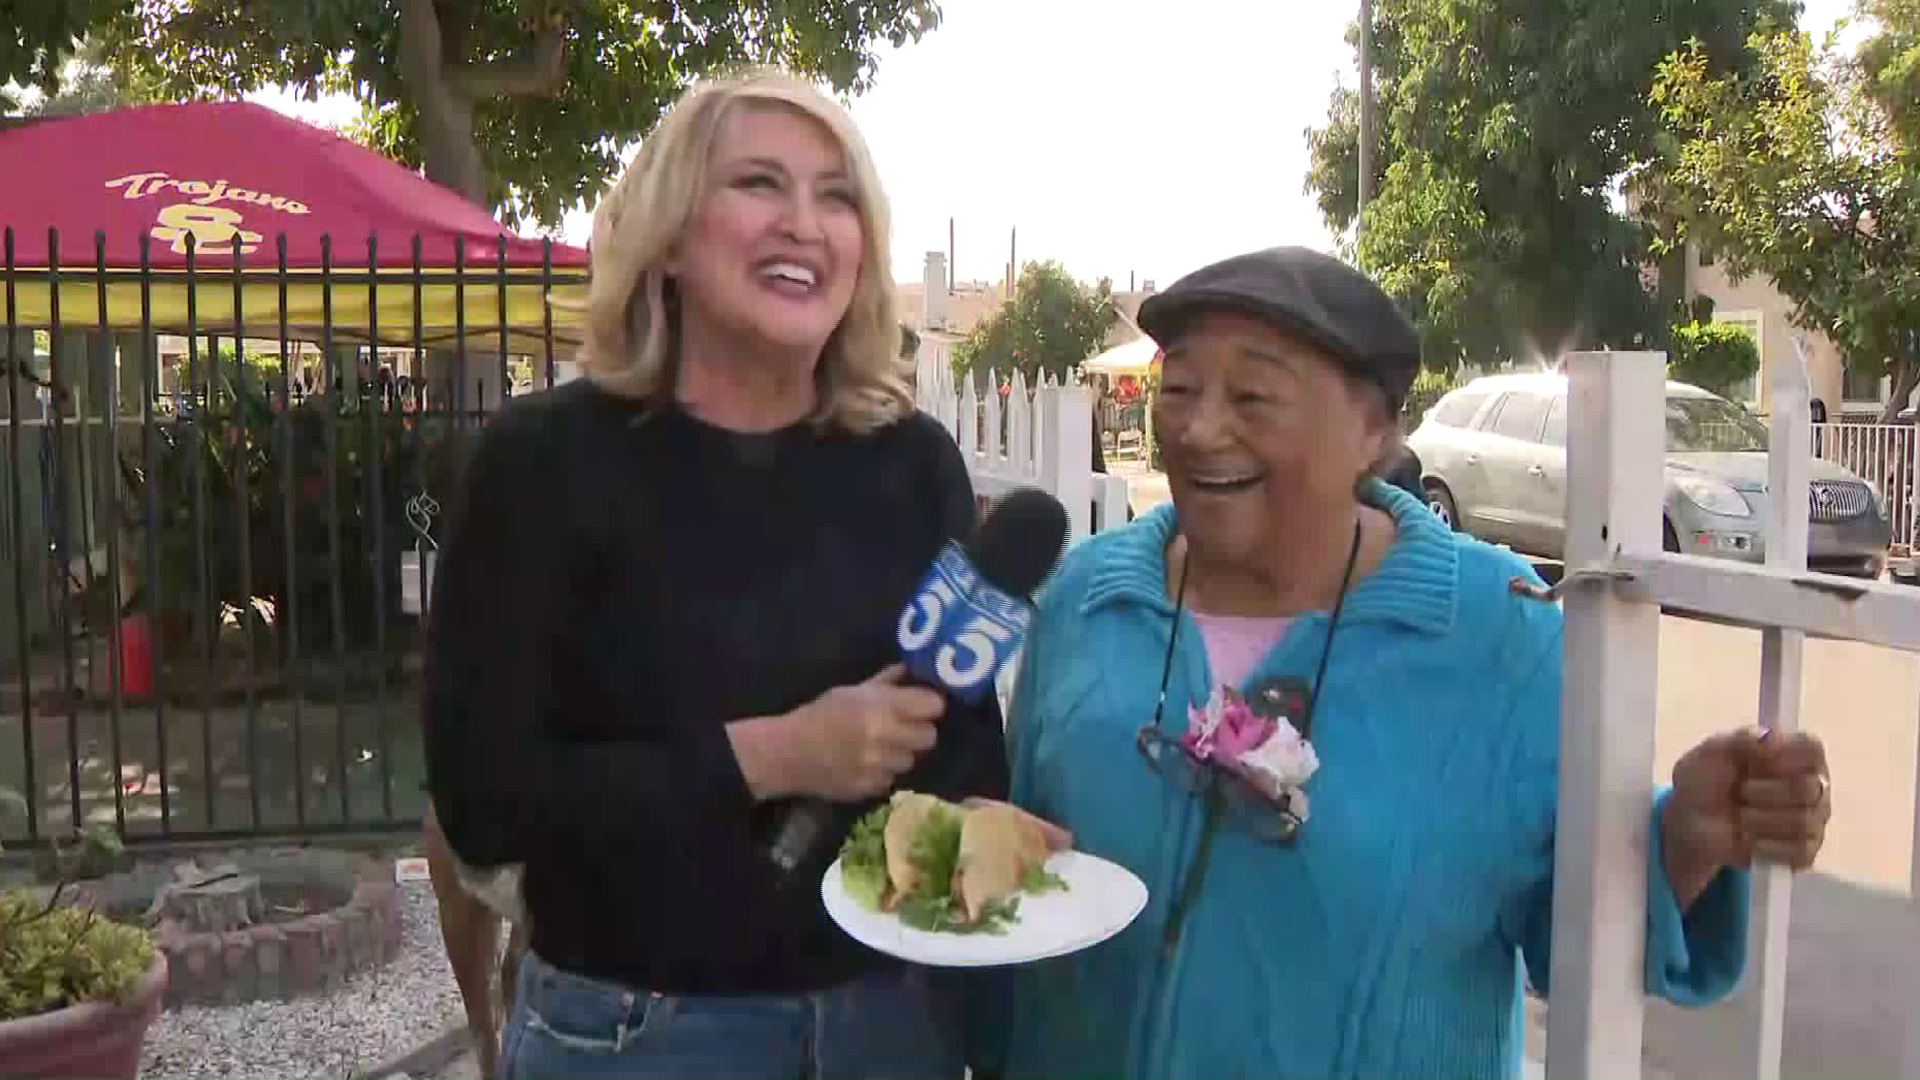 """Parents of Watts' """"Sweet Alice"""" Harris offered residents turkeys and tacos for the advocacy group's annual Thanksgiving giveaway on Nov. 26, 2019. (Credit: KTLA)"""